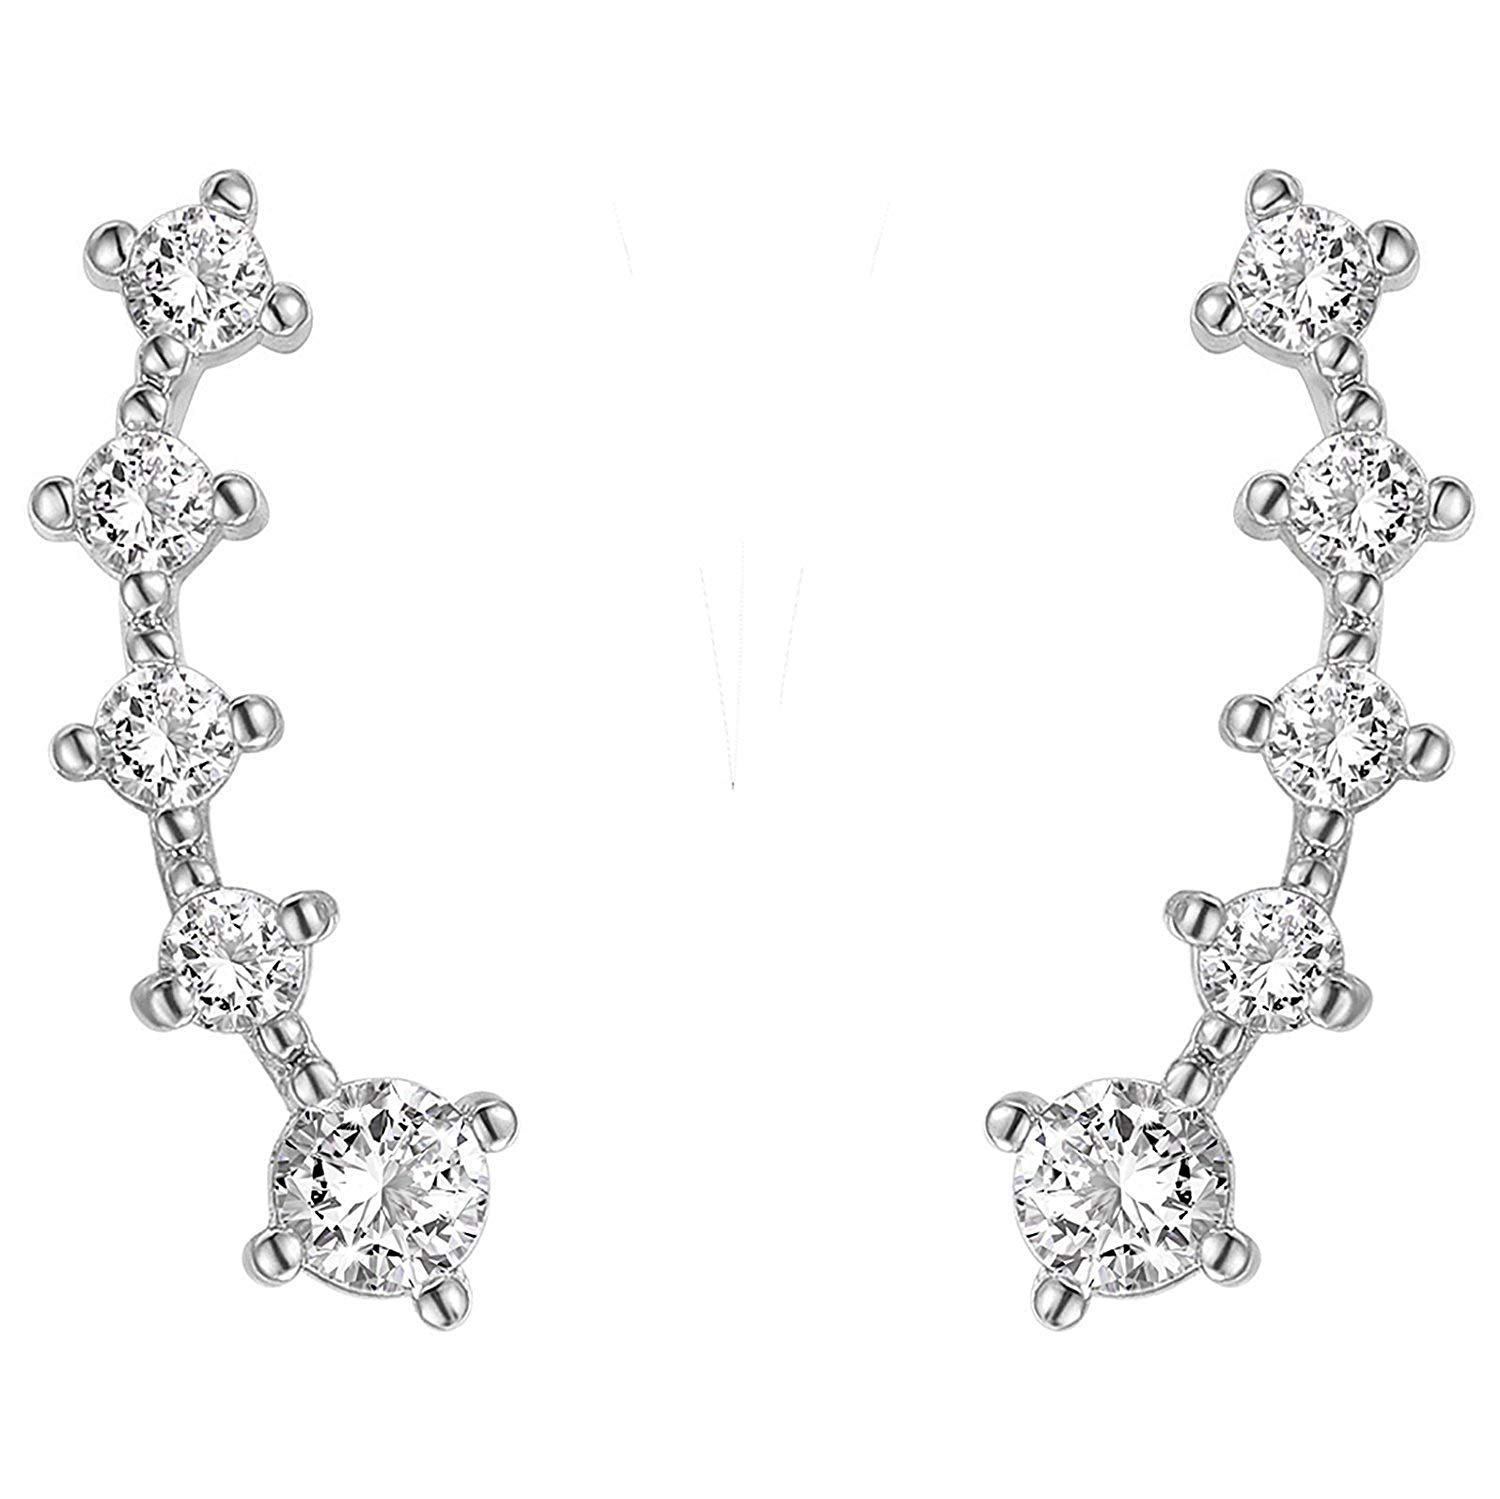 PAVOI Rhodium Plated Sterling Silver Post Climber Arrow Ear Crawler Pearl Earrings Set by PAVOI